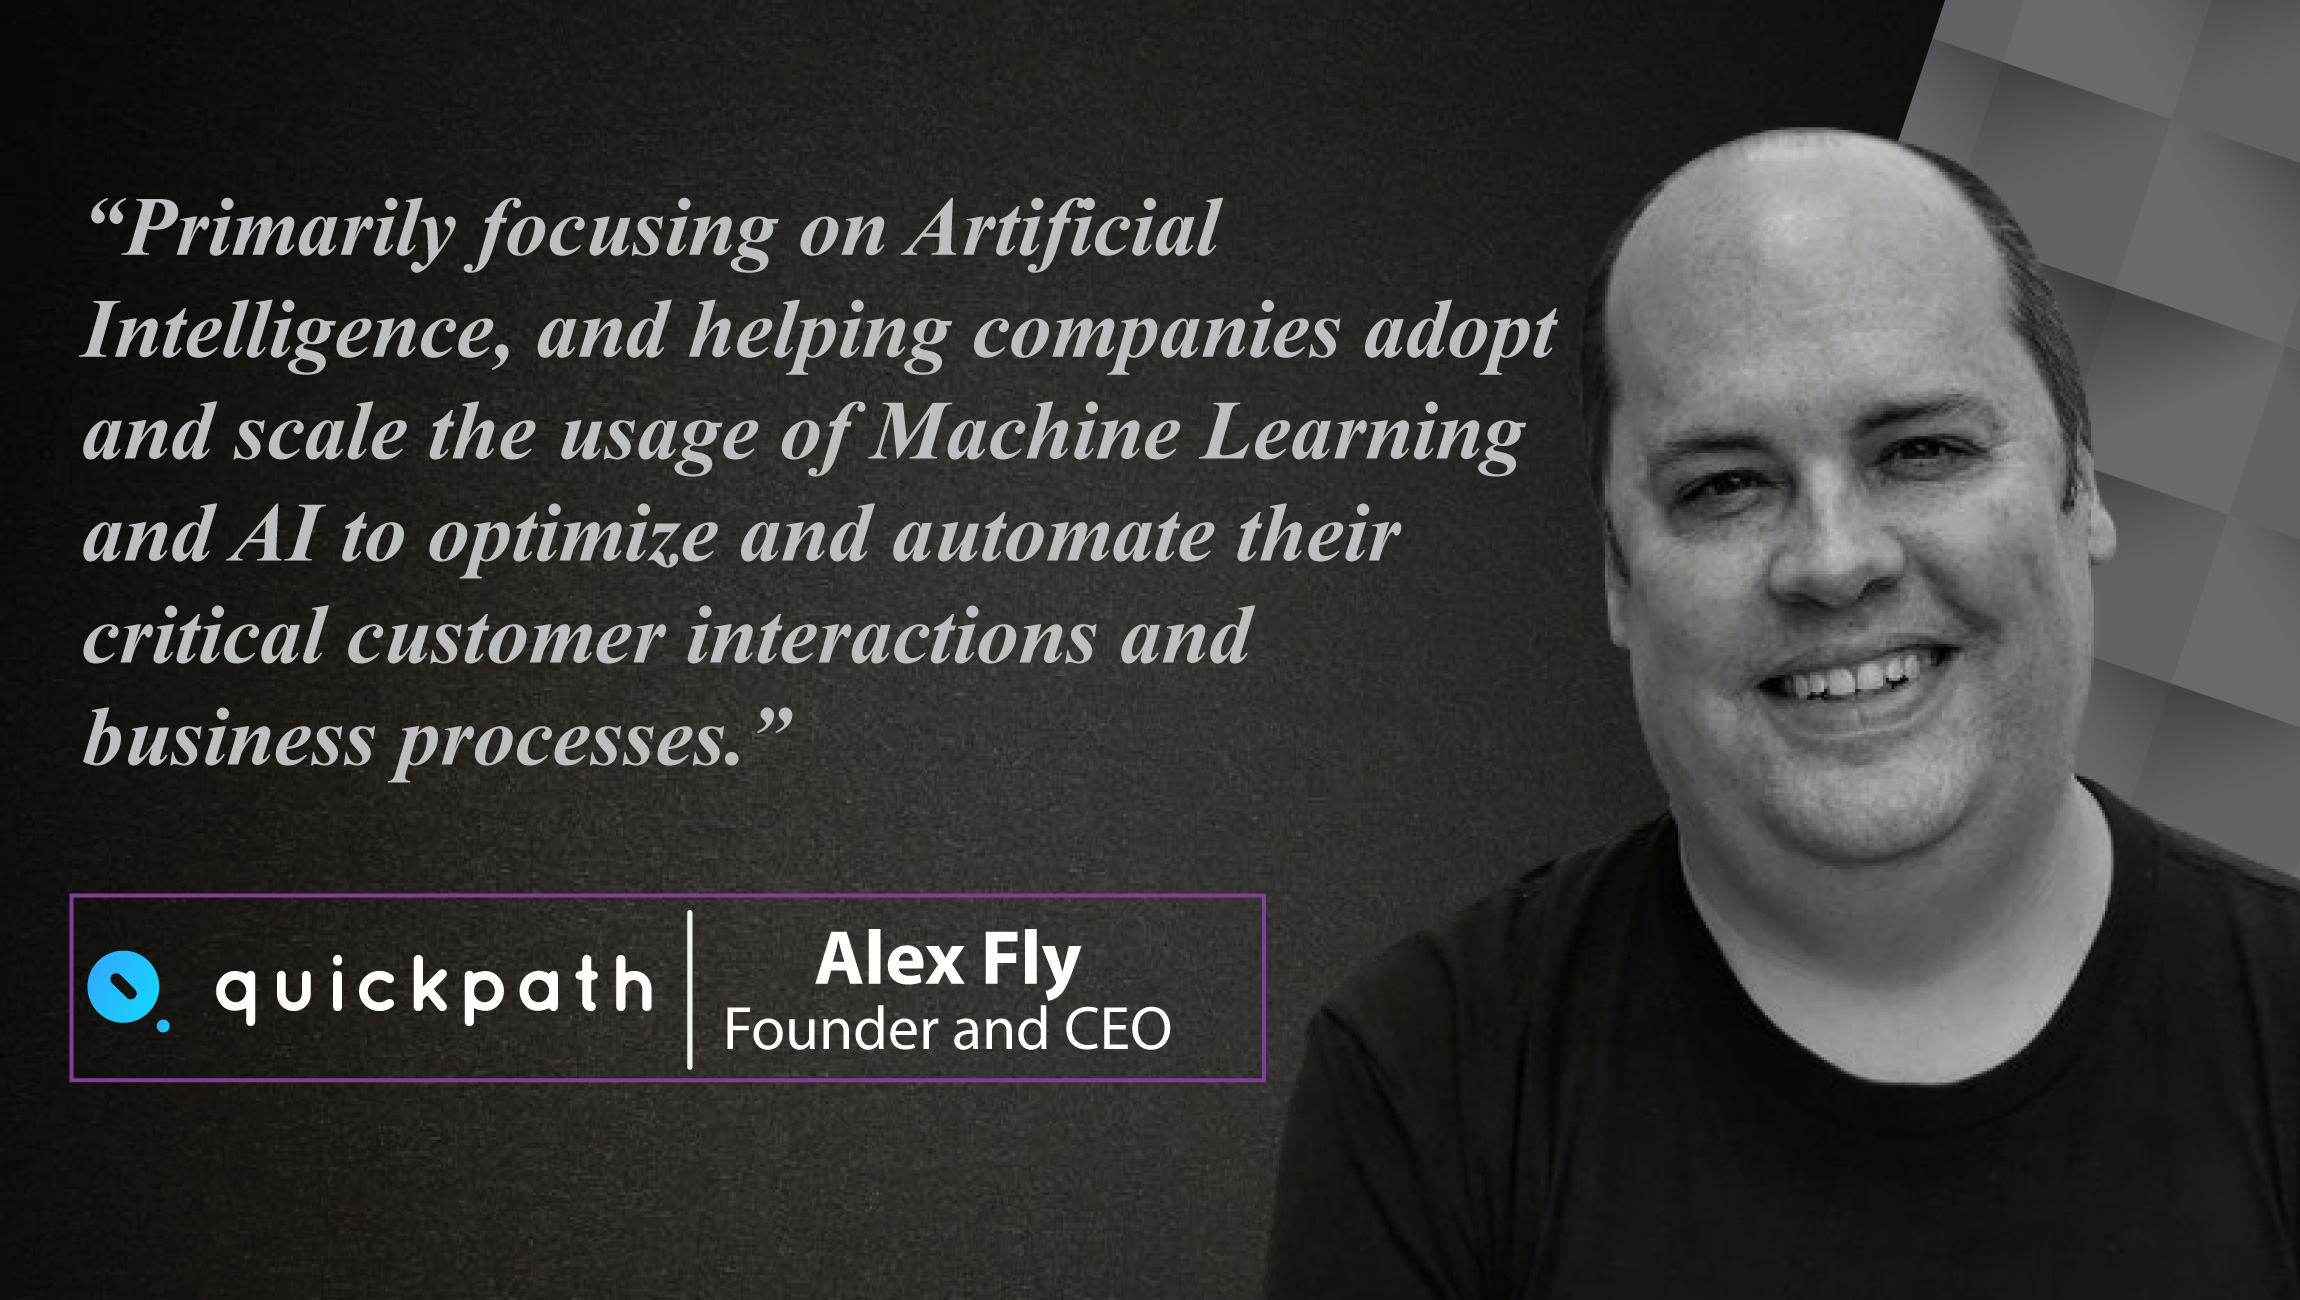 Interview with Alex Fly, Founder and CEO, Quickpath